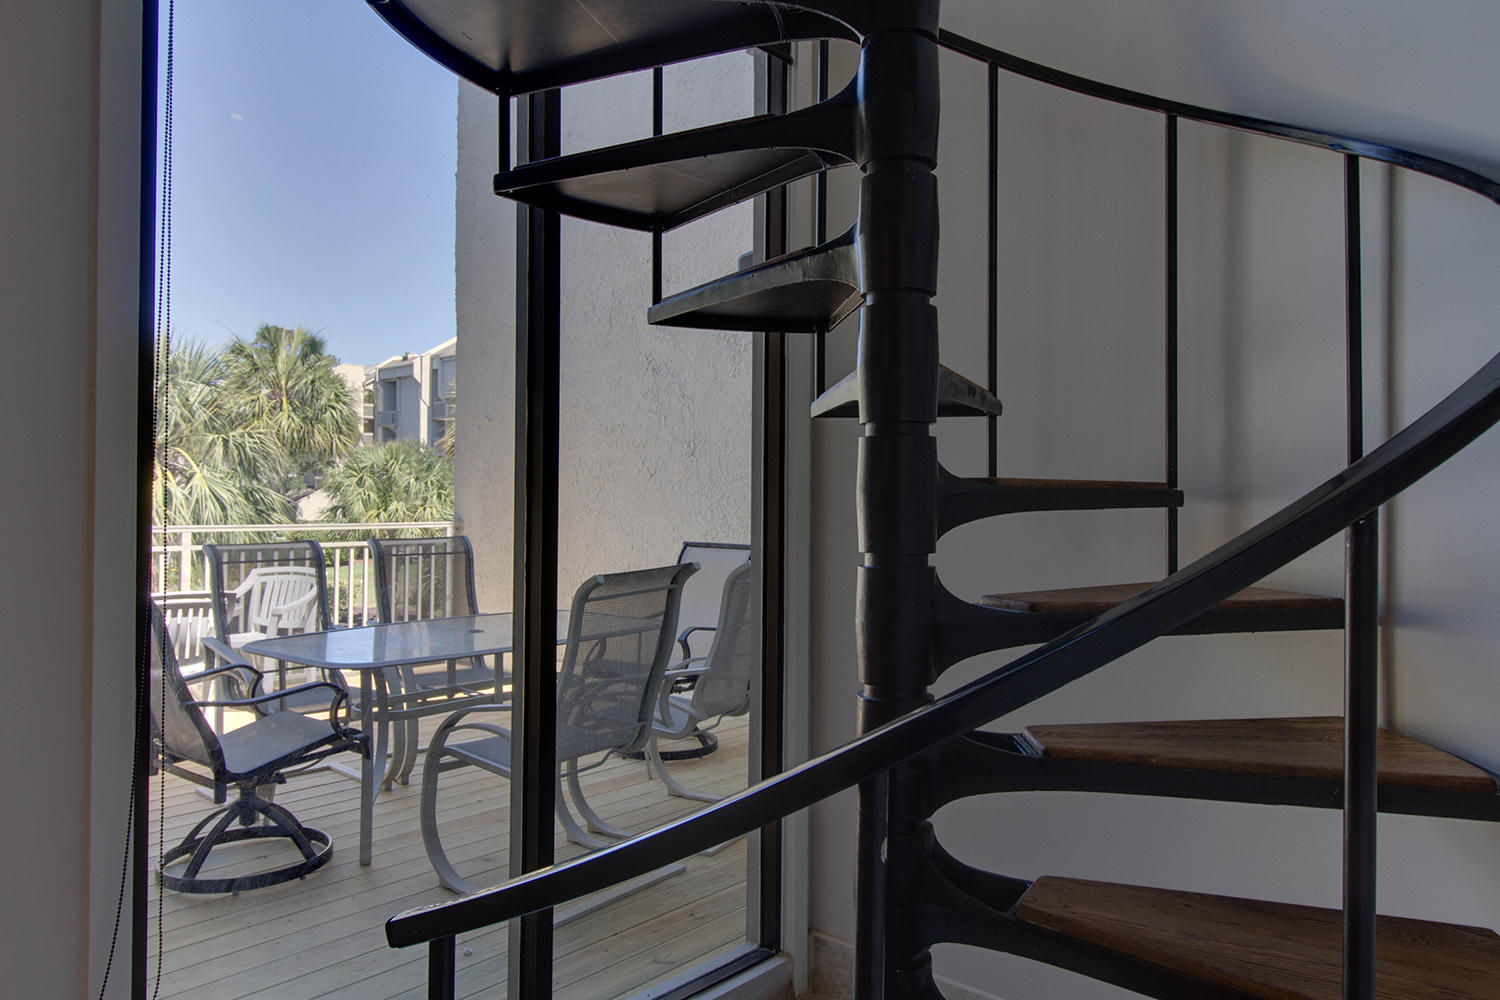 Spiral Staircase and View